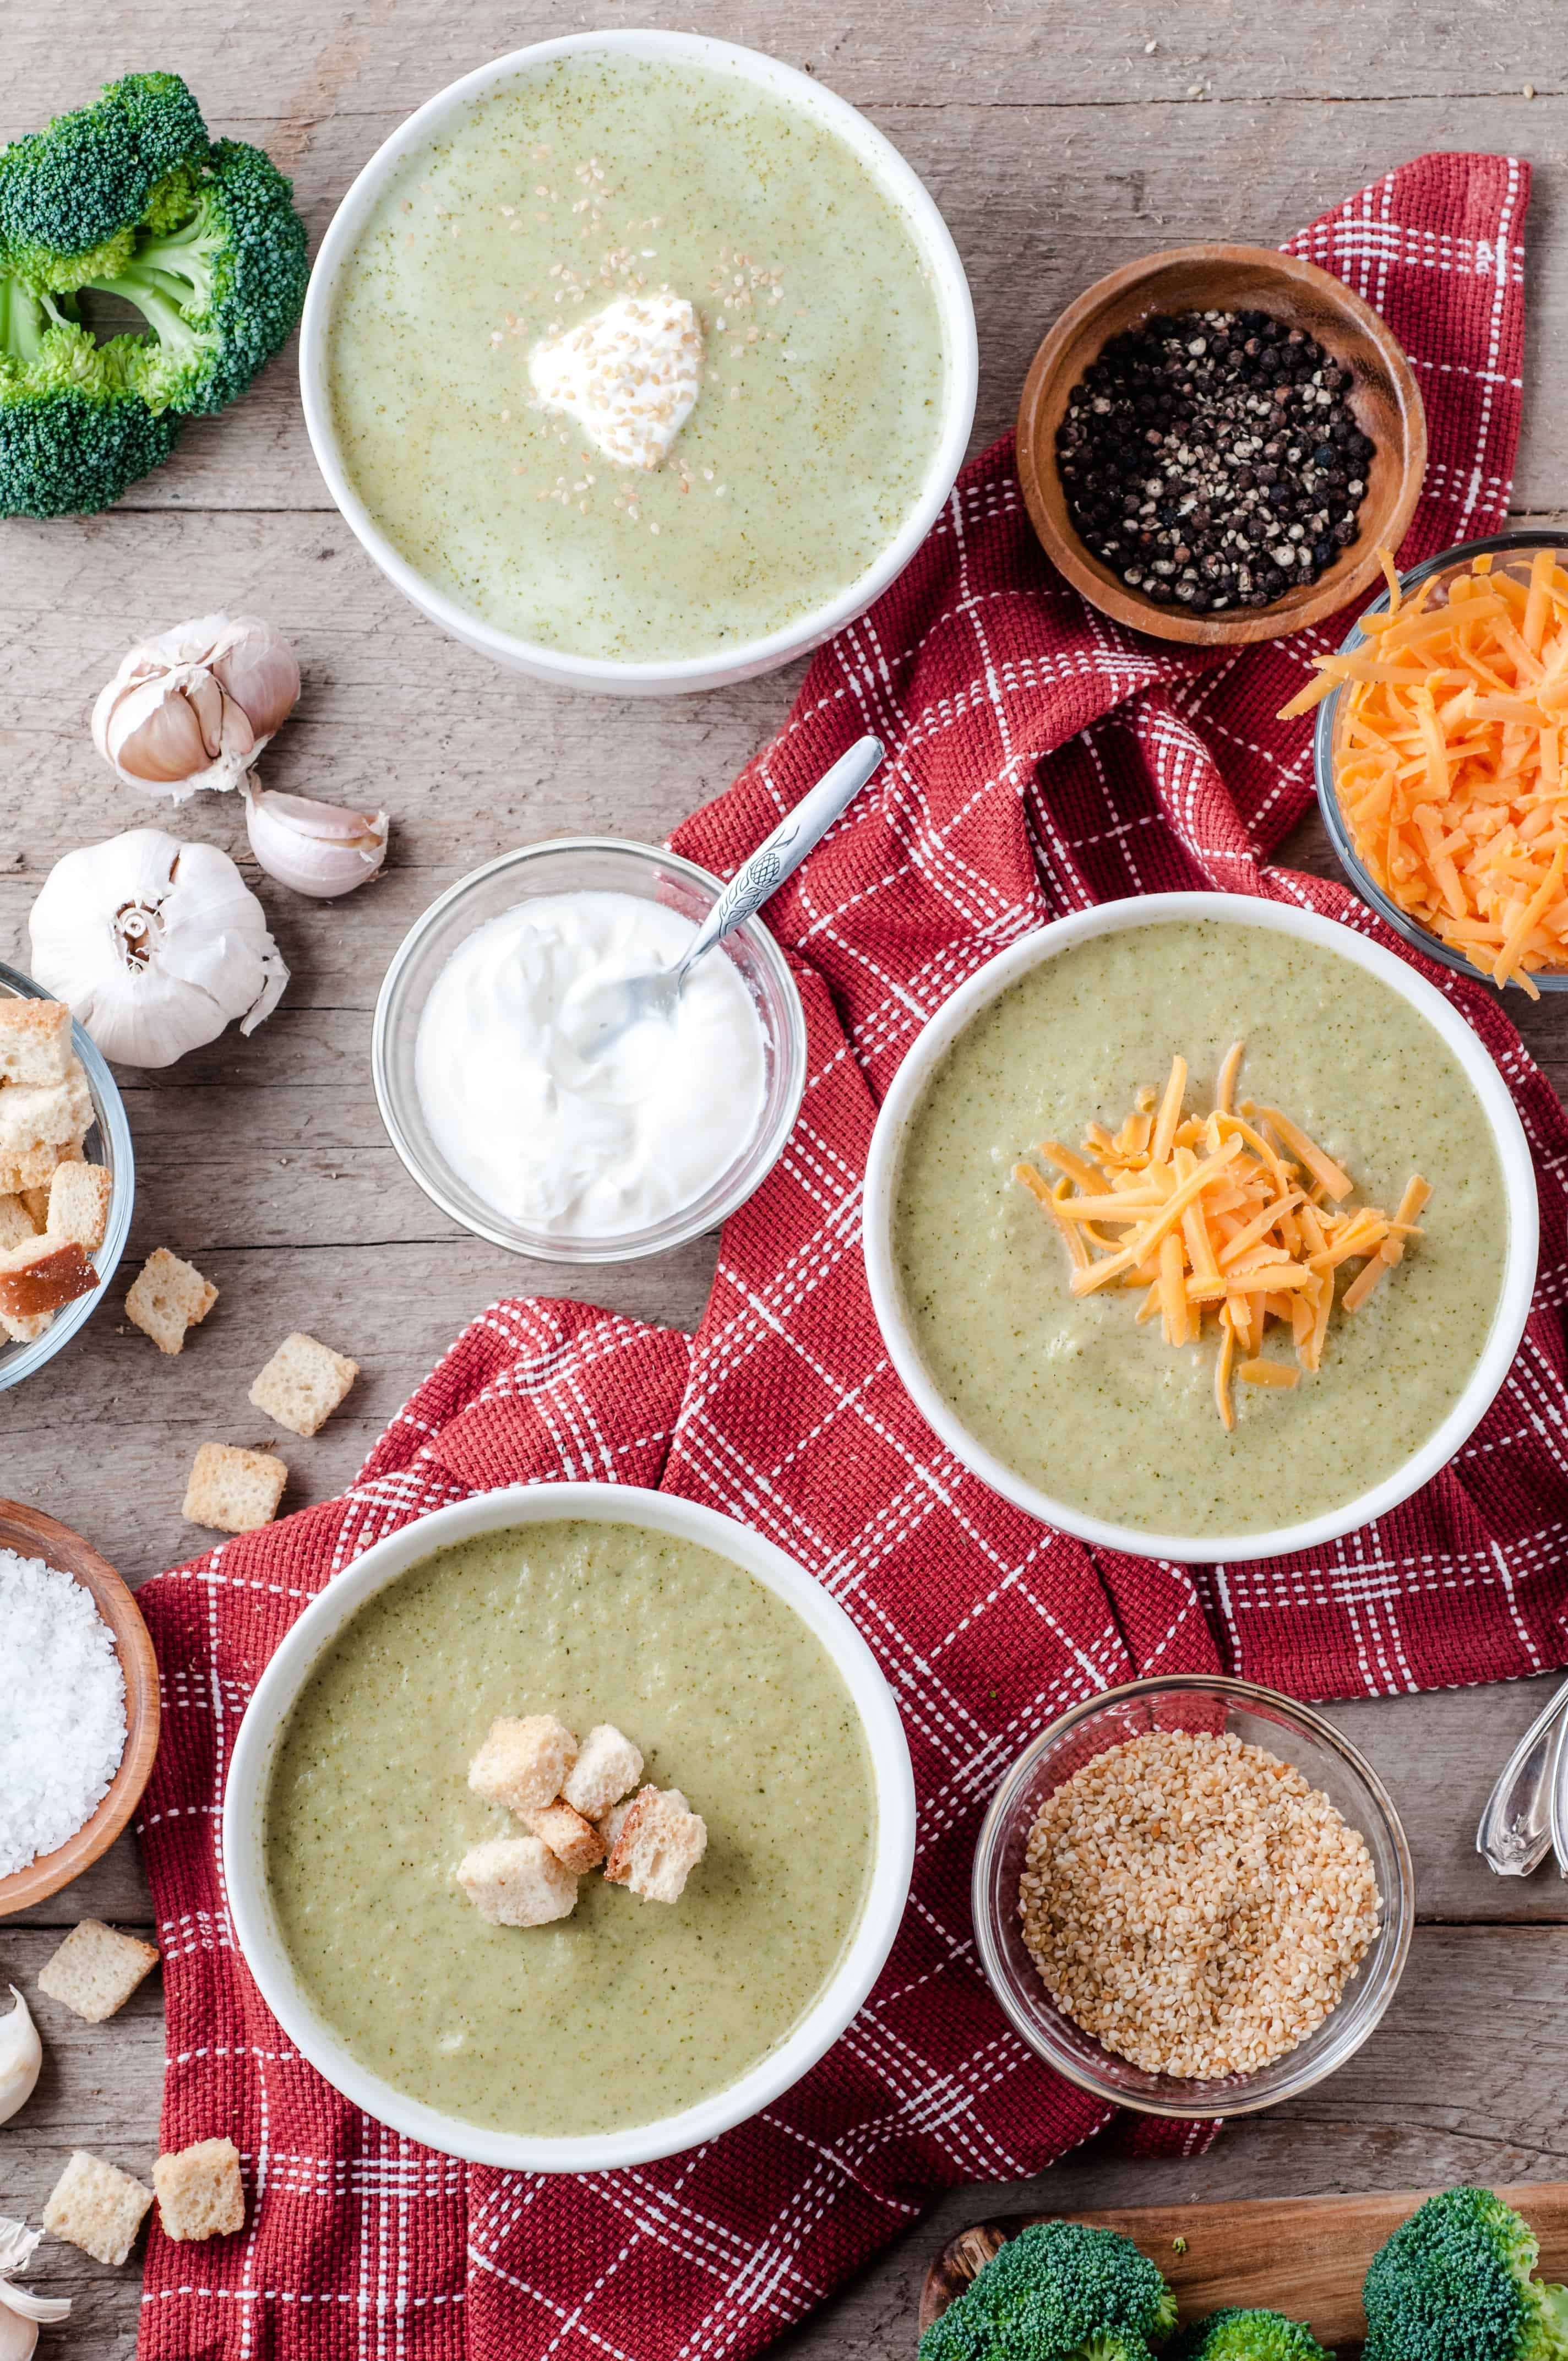 3 bowls of Vegetarian Cream of Broccoli soup with toppings.